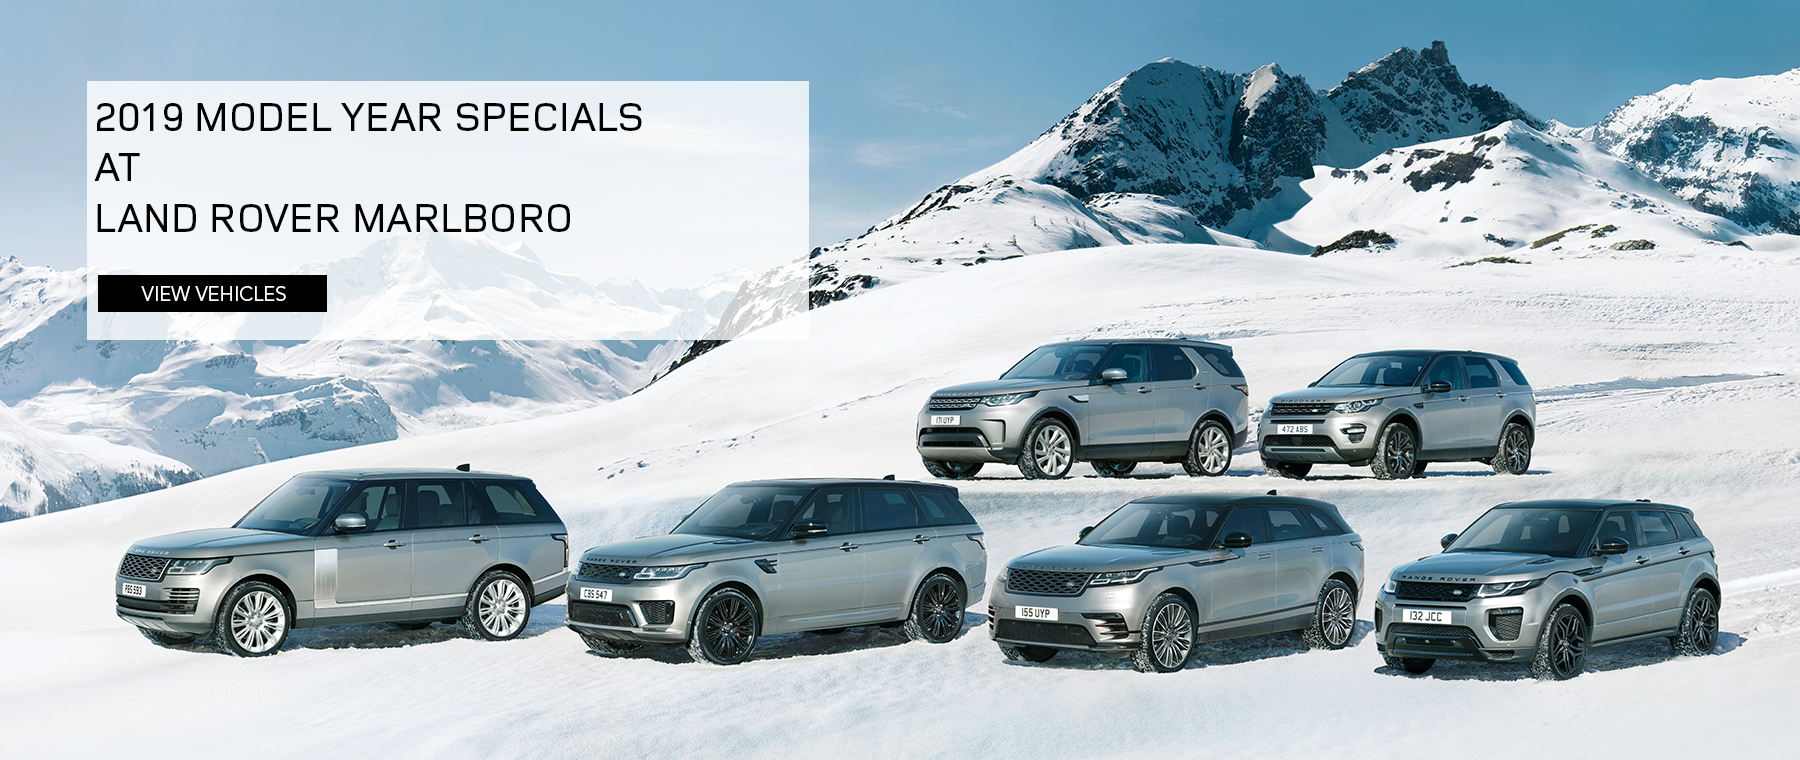 2019 Model Year Specials at Land Rover Marlboro. Click to view vehicles. Model line up on snowy mointain